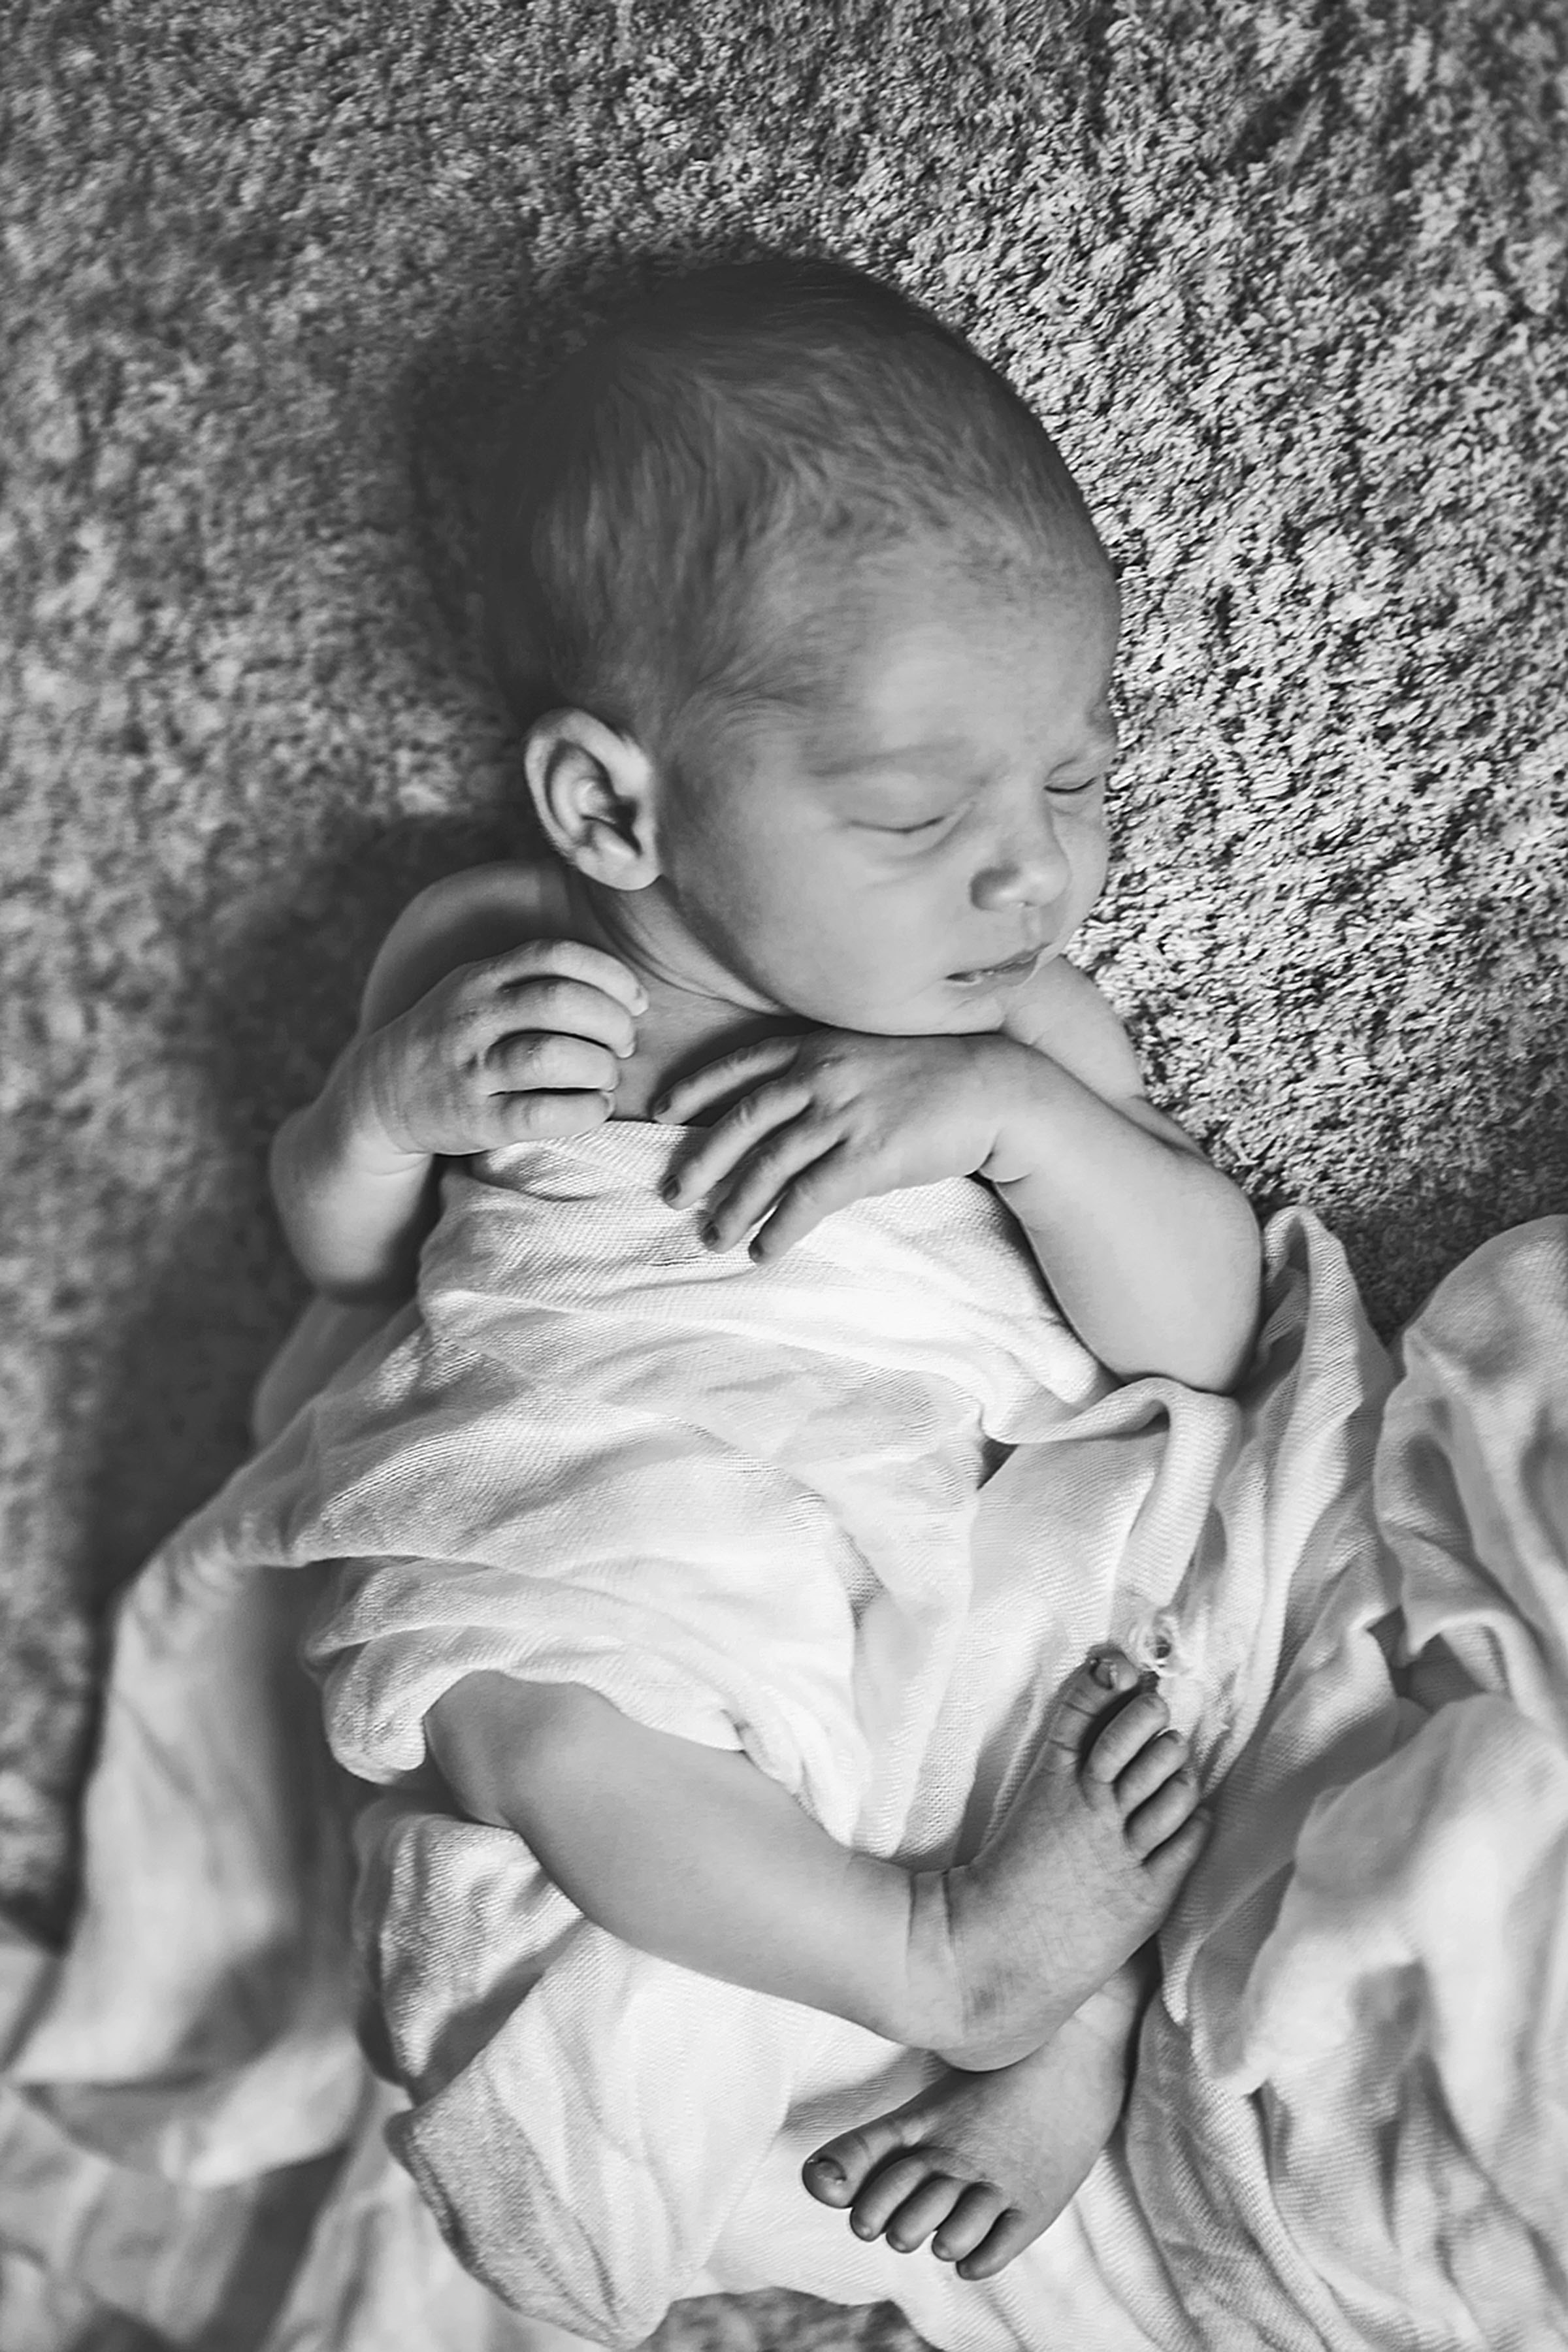 Southern_Pines_Newborn_Photographer_Tiffany_Abruzzo_Photography_13.jpg